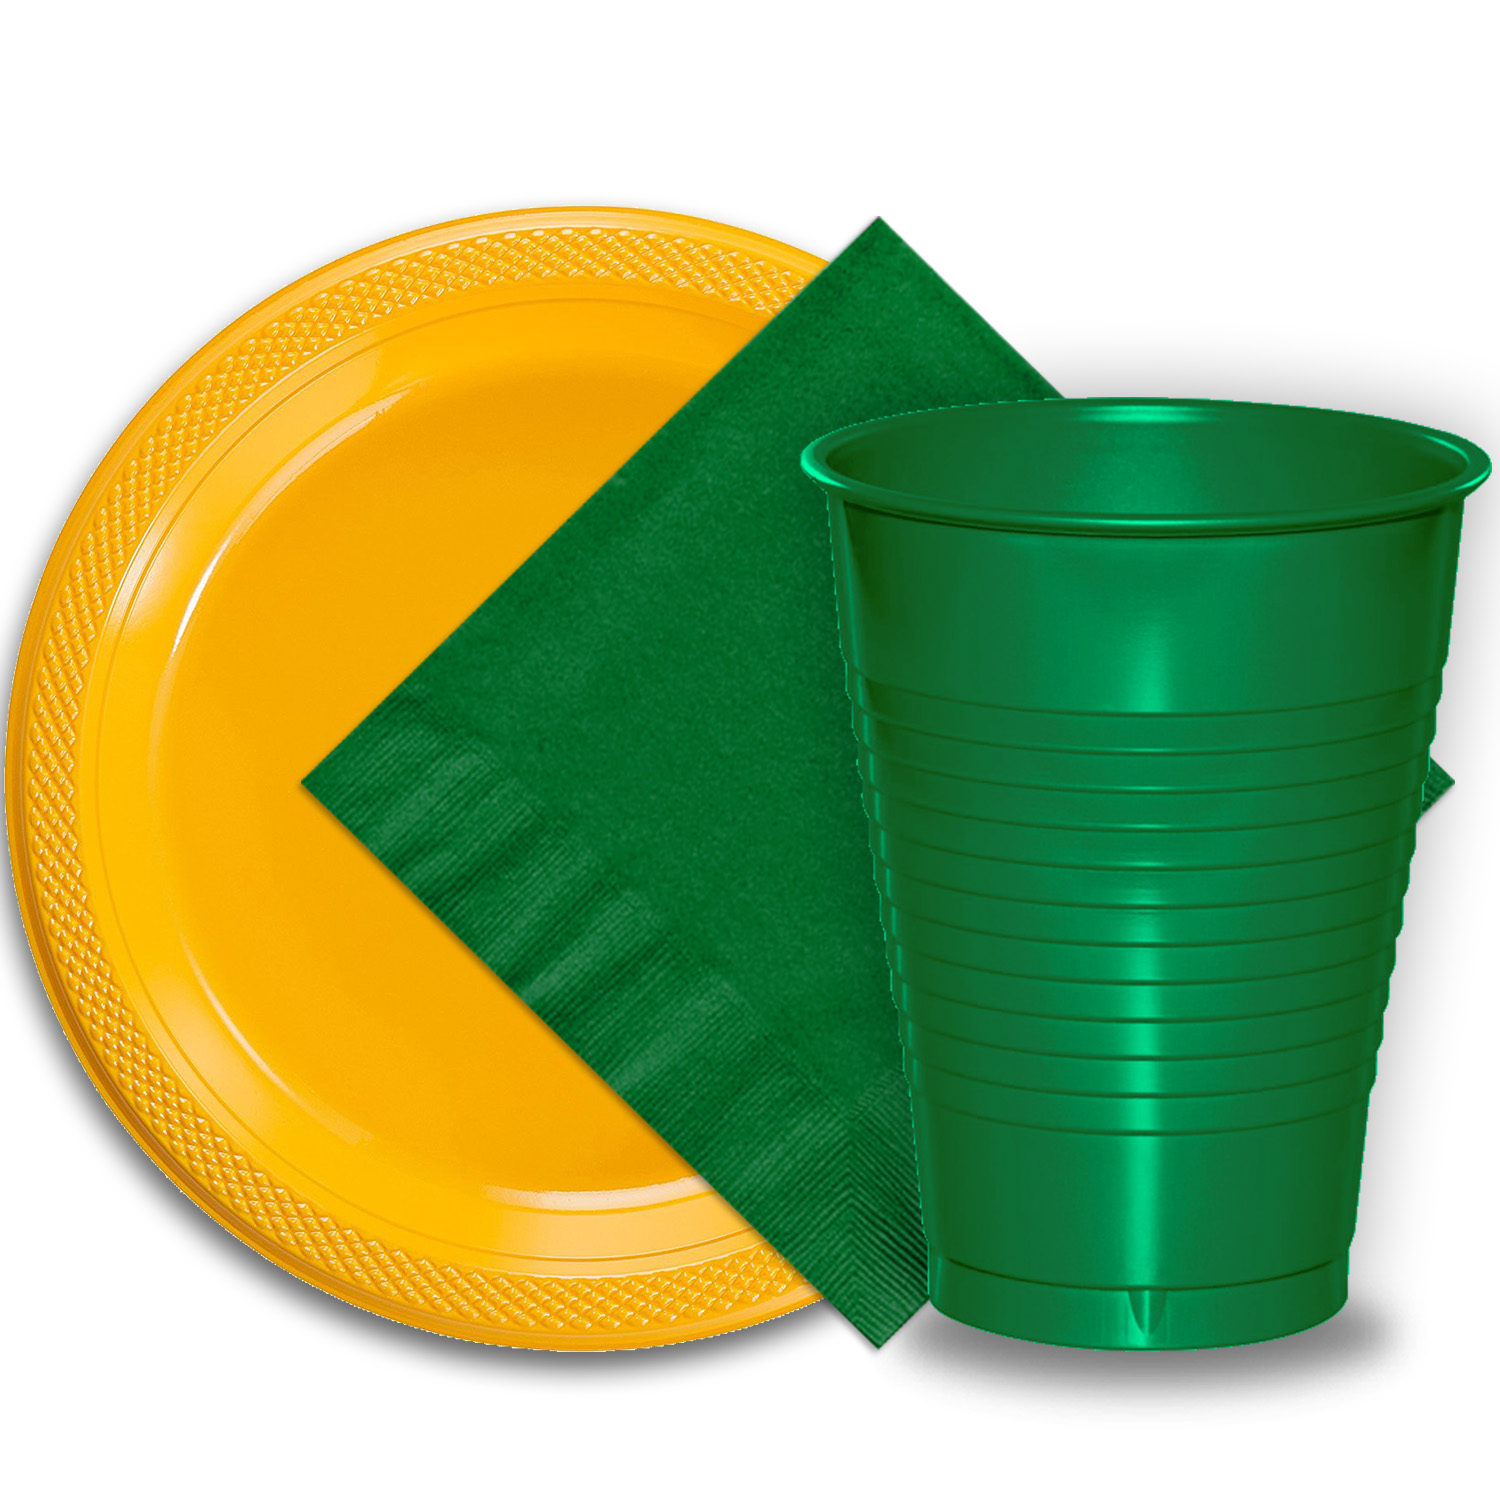 """50 Yellow Plastic Plates (9""""), 50 Emerald Green Plastic Cups (12 oz.), and 50 Emerald Green Paper Napkins, Dazzelling Colored Disposable Party Supplies Tableware Set for Fifty Guests."""